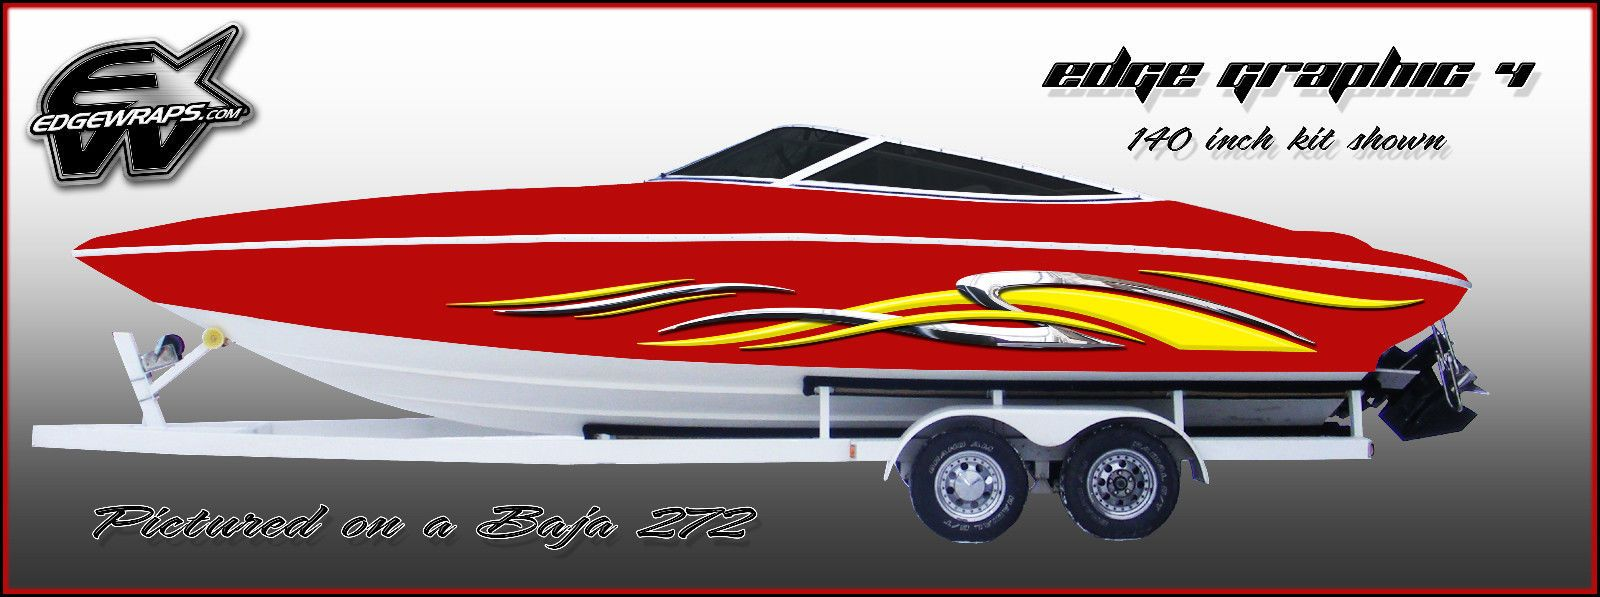 Inlcudes Two Panels One For Each Side All Our Edge Graphics Are Custom Designed And Made In House And Sizes And Can Be Custom M Boat Brands Boat Wraps Boat